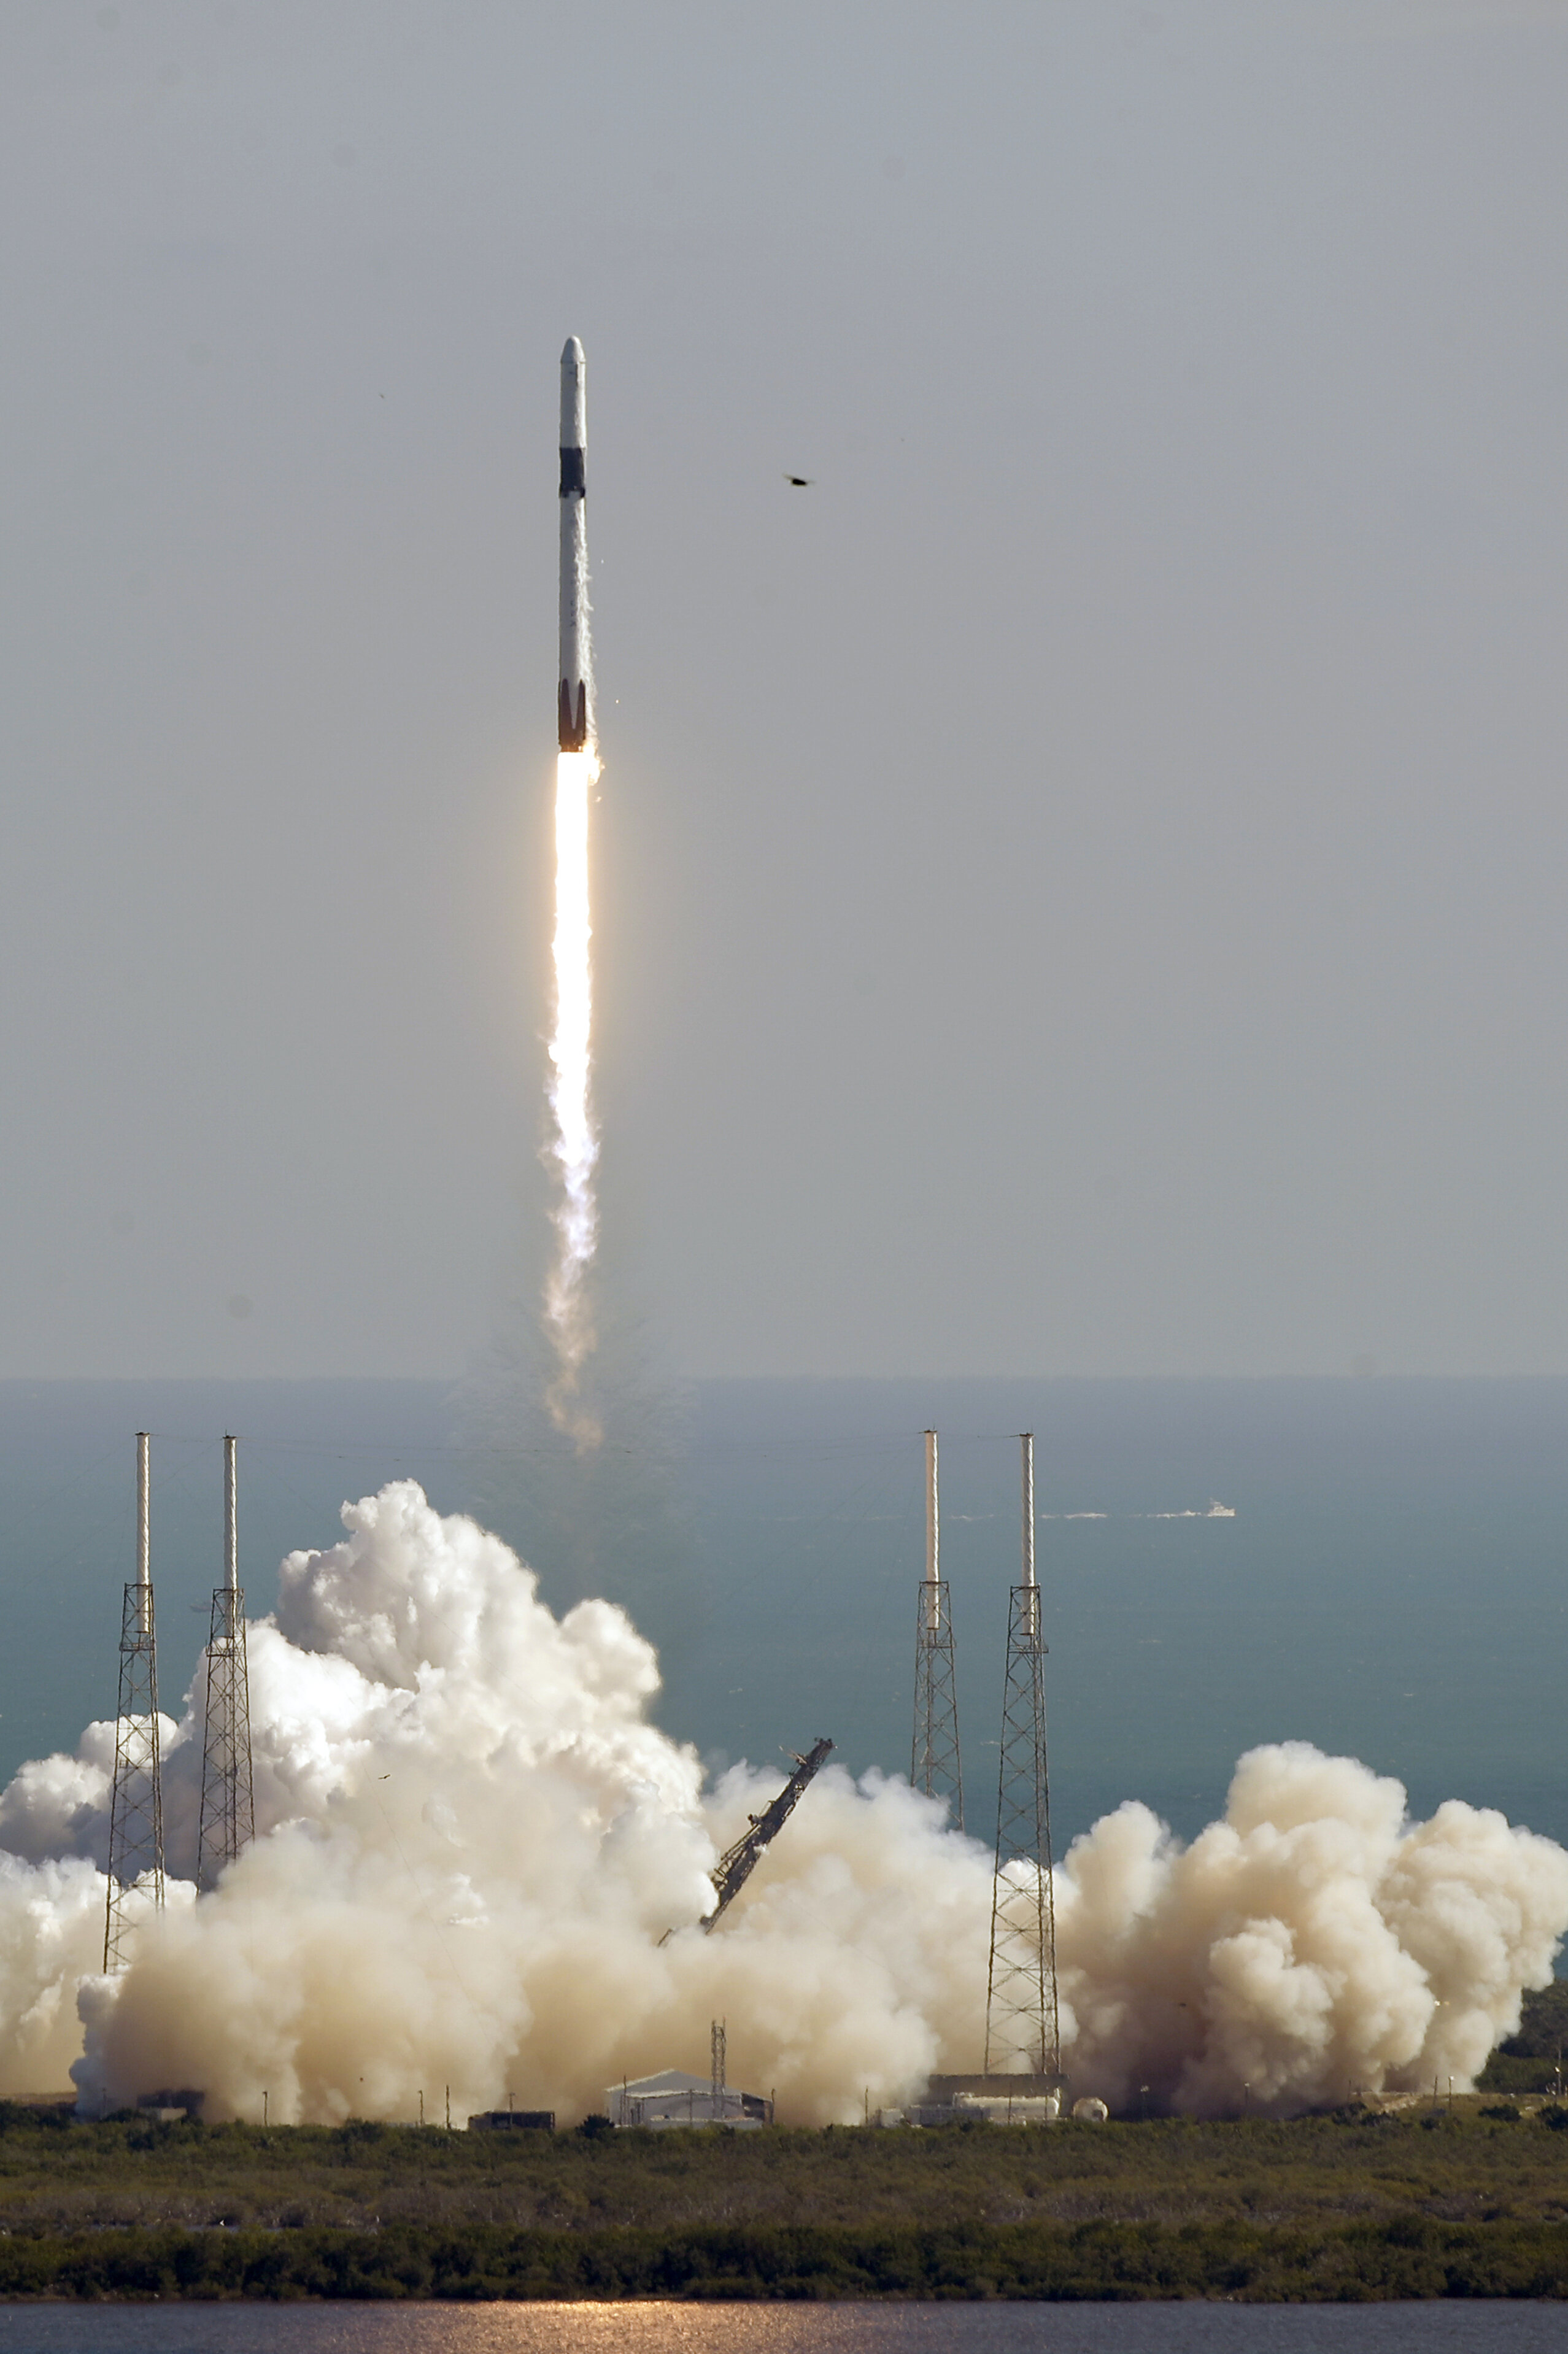 Falcon 9 SpaceX rocket on a resupply mission to the ISS. (AP Photo/John Raoux)